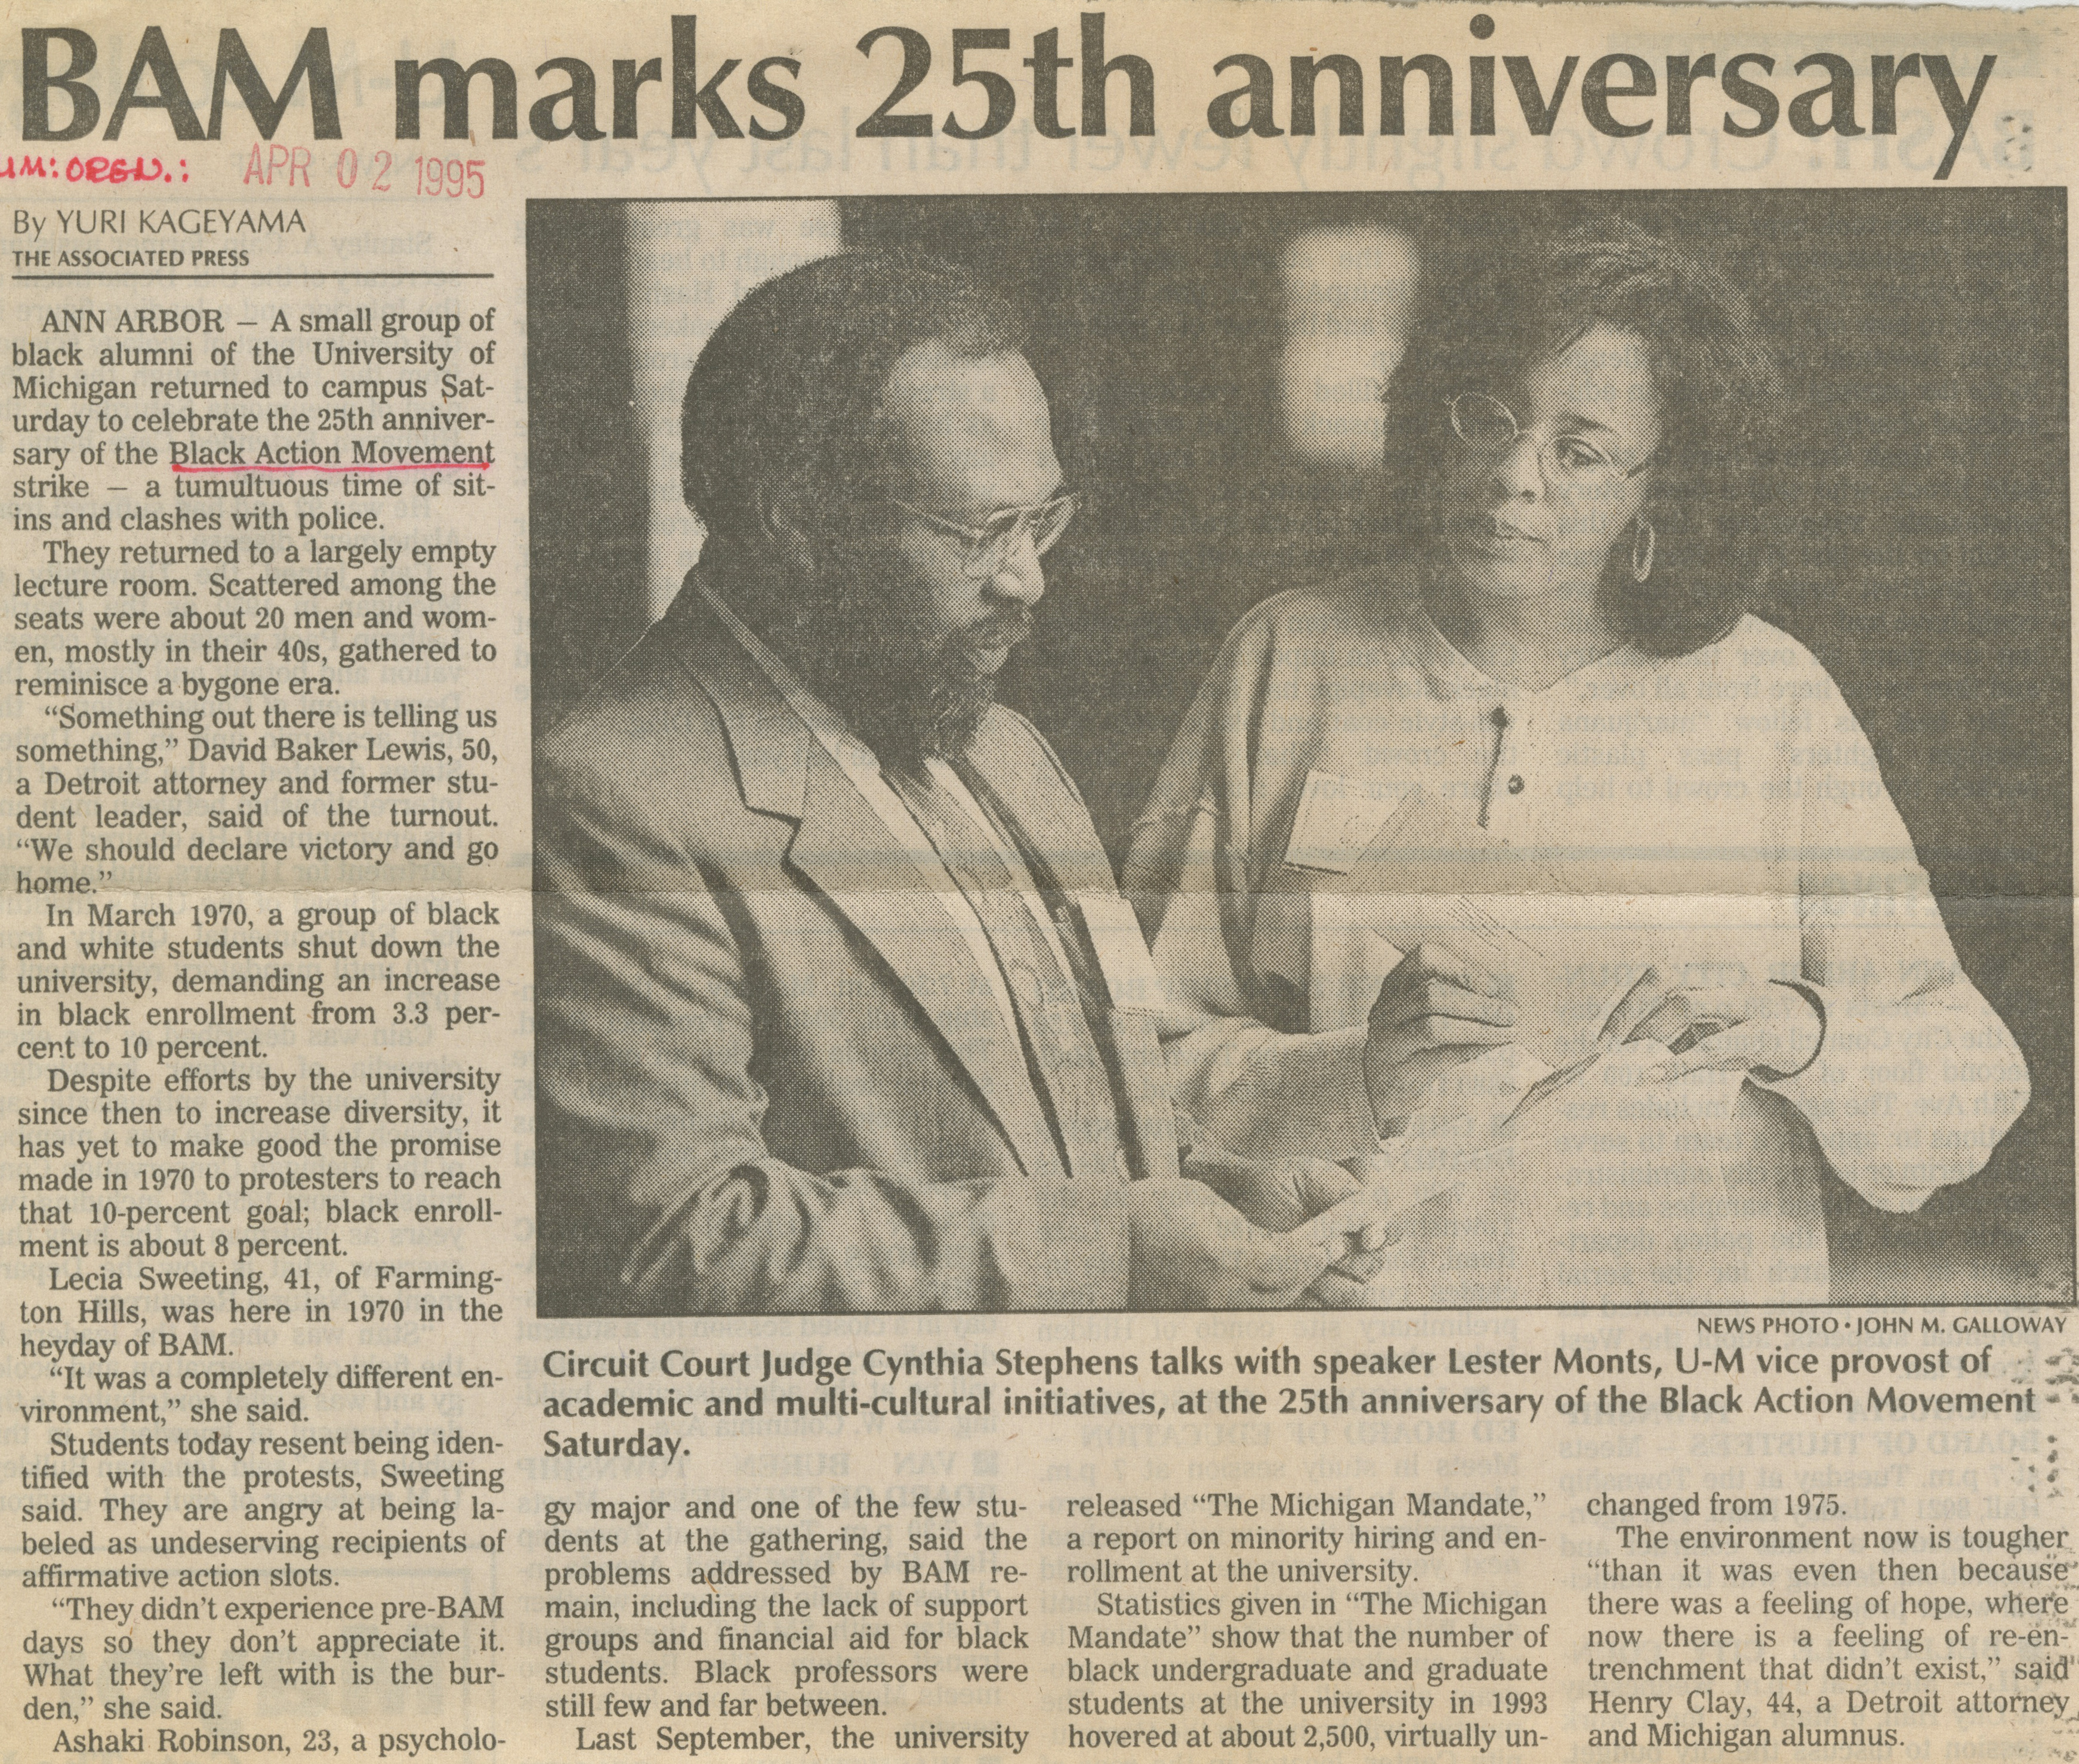 BAM Marks 25th Anniversary image